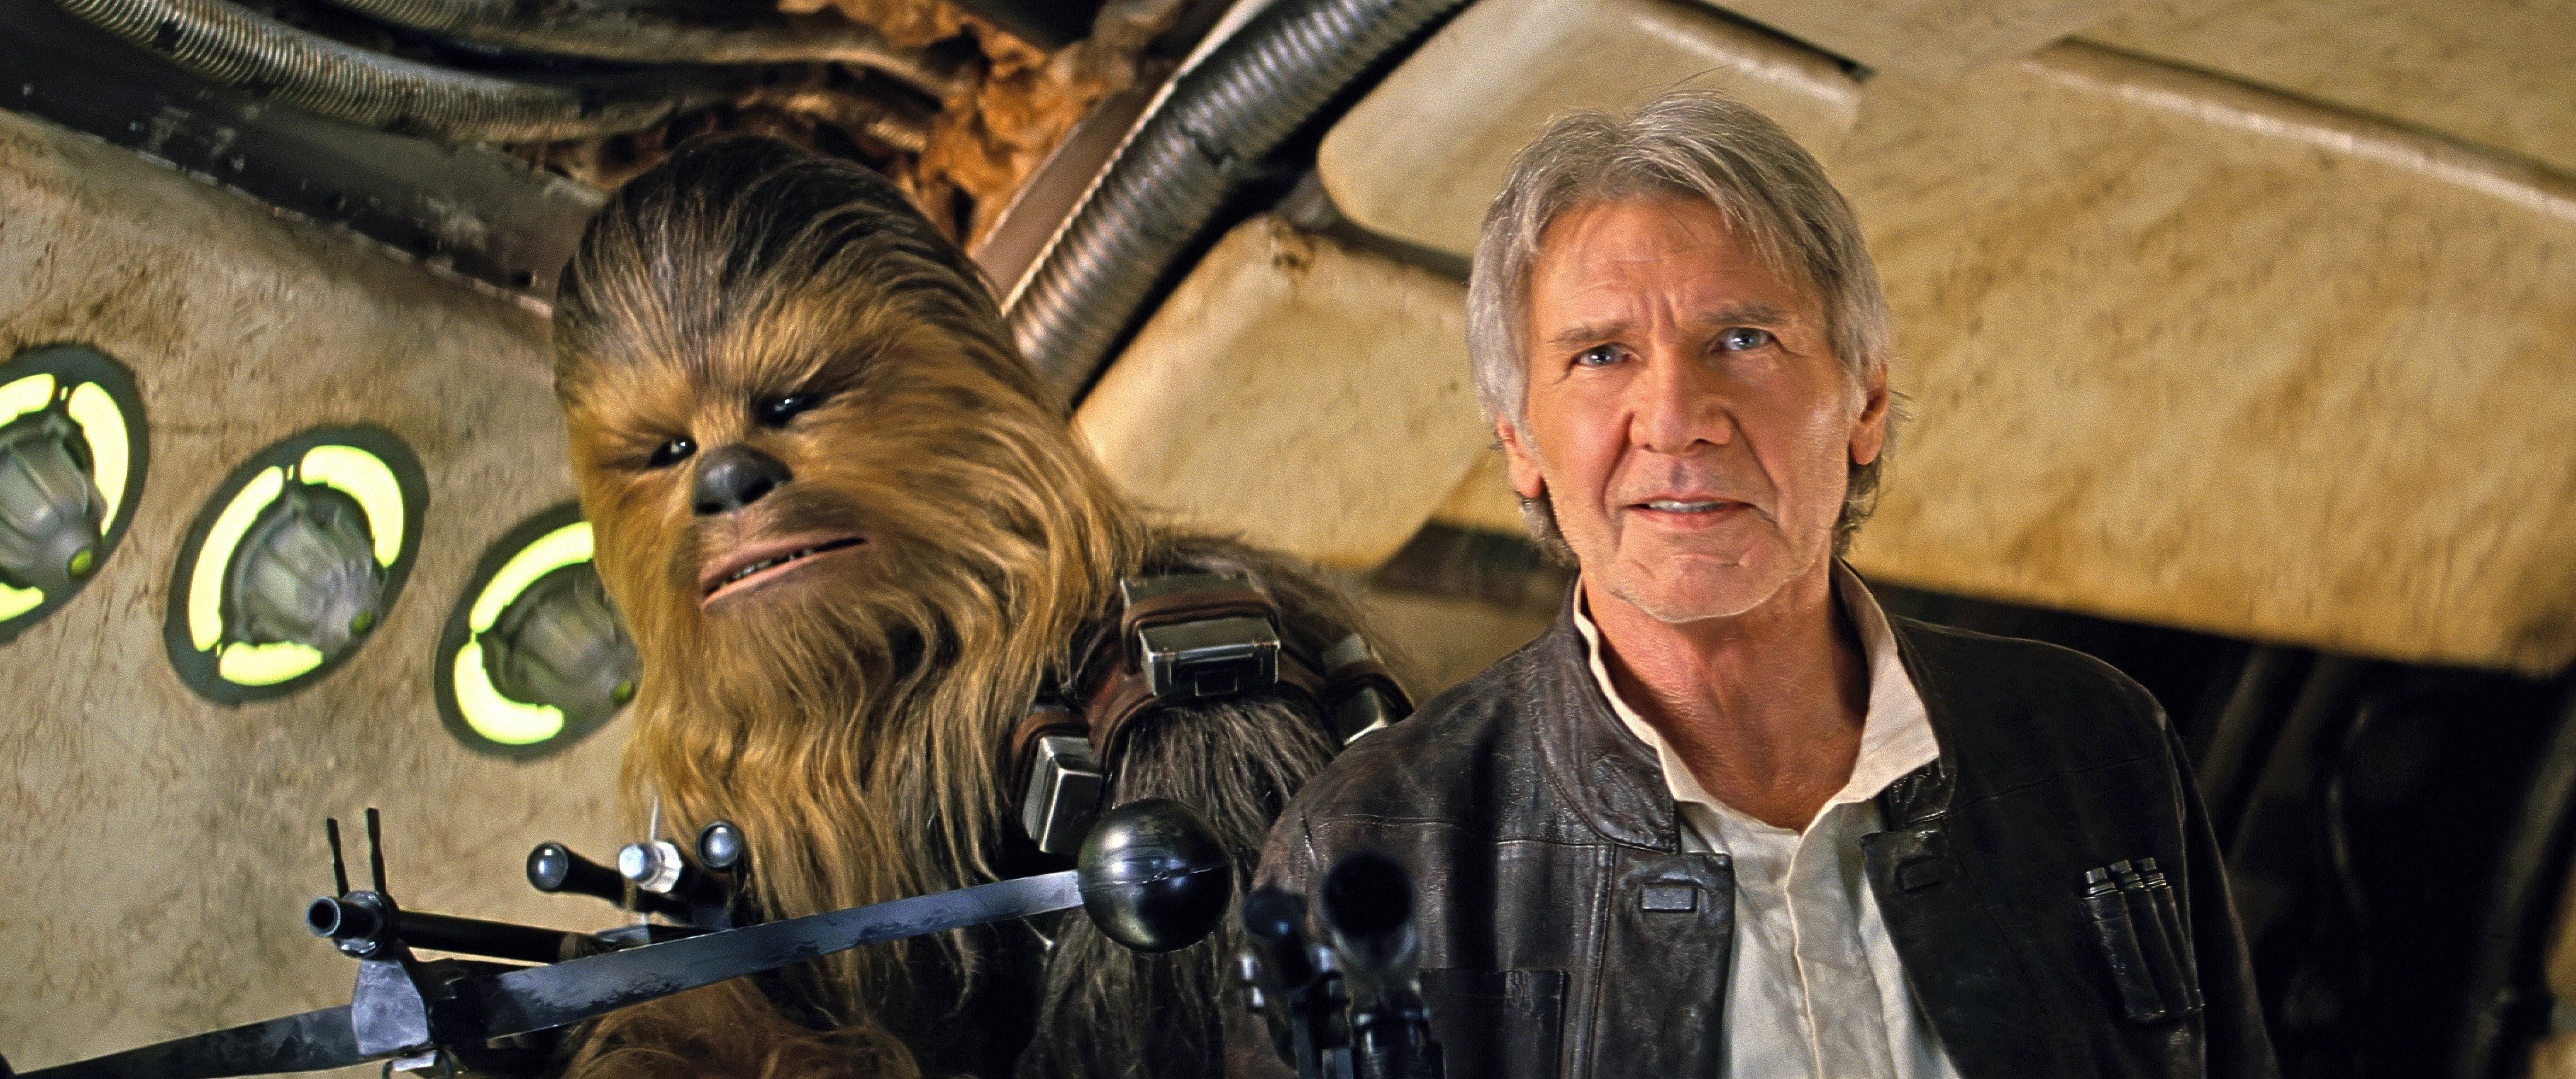 han-solo-chewbacca-and-the-millennium-falcon-return-for-the-star-wars-vii-trailer-362283